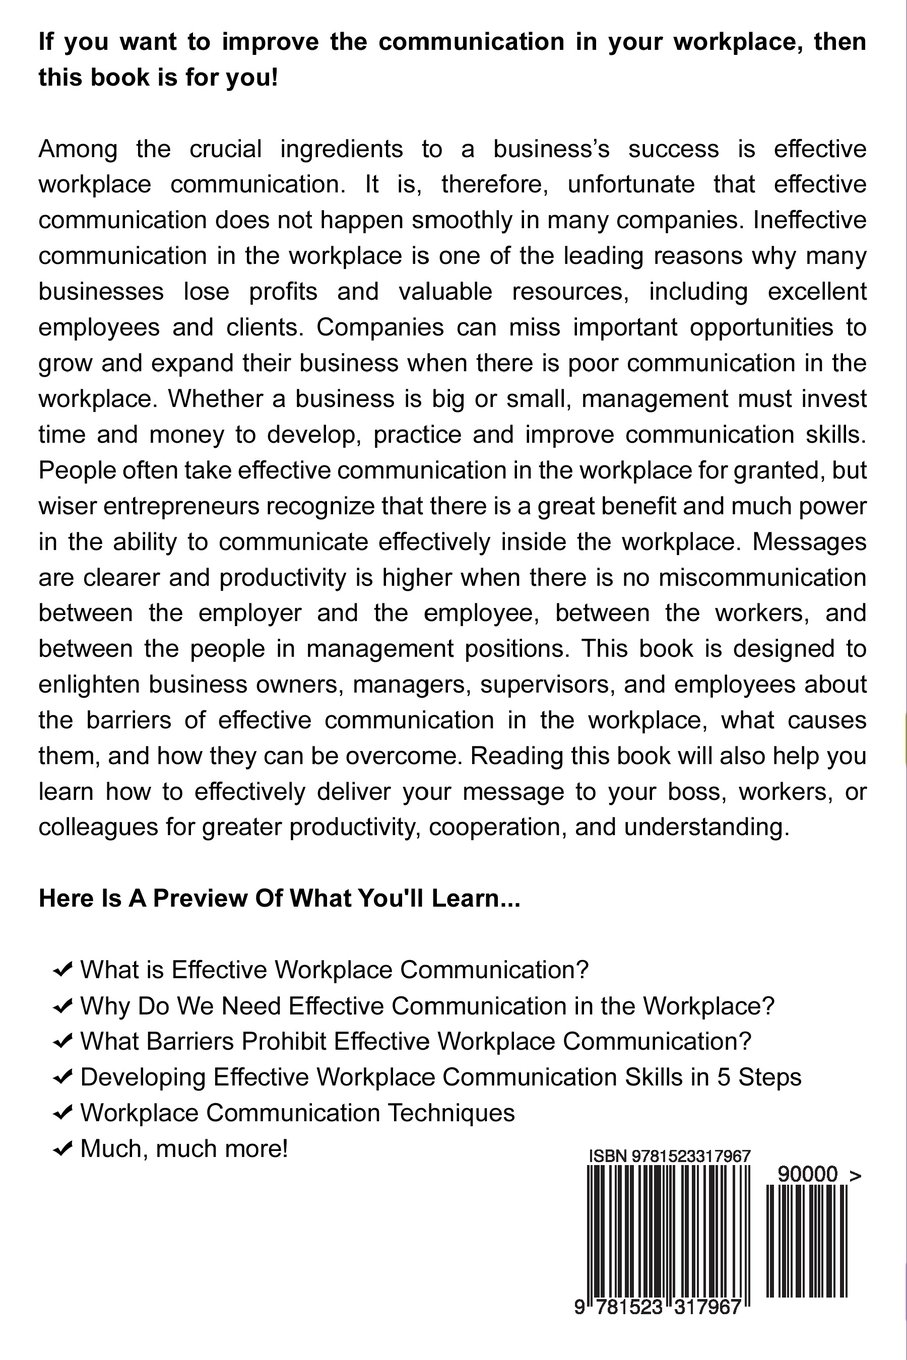 Effective Communication in the Workplace: Learn How to